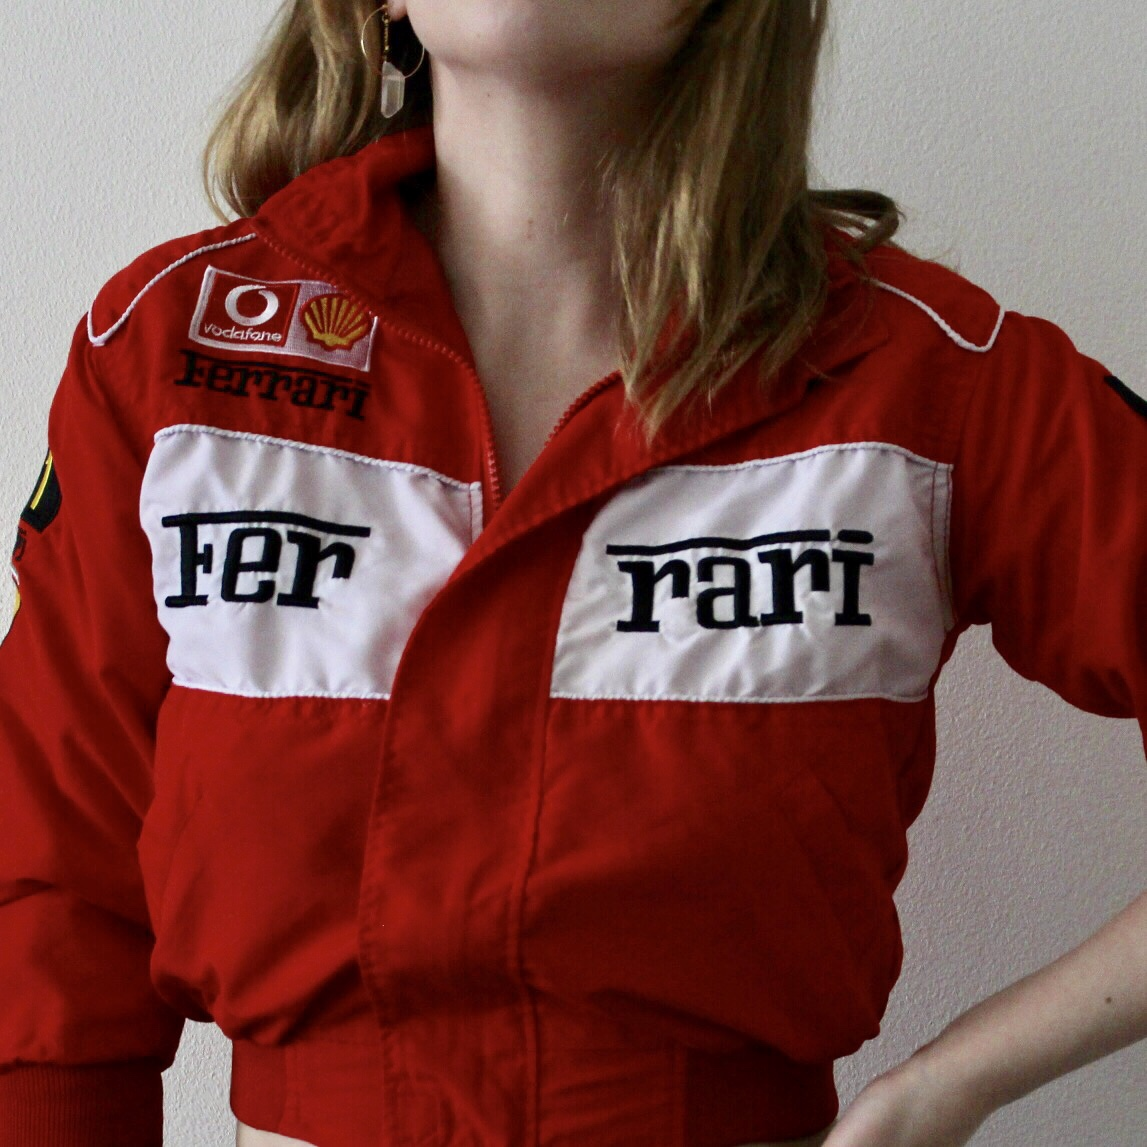 Red and white ferrari jacket, childrens size but , Depop